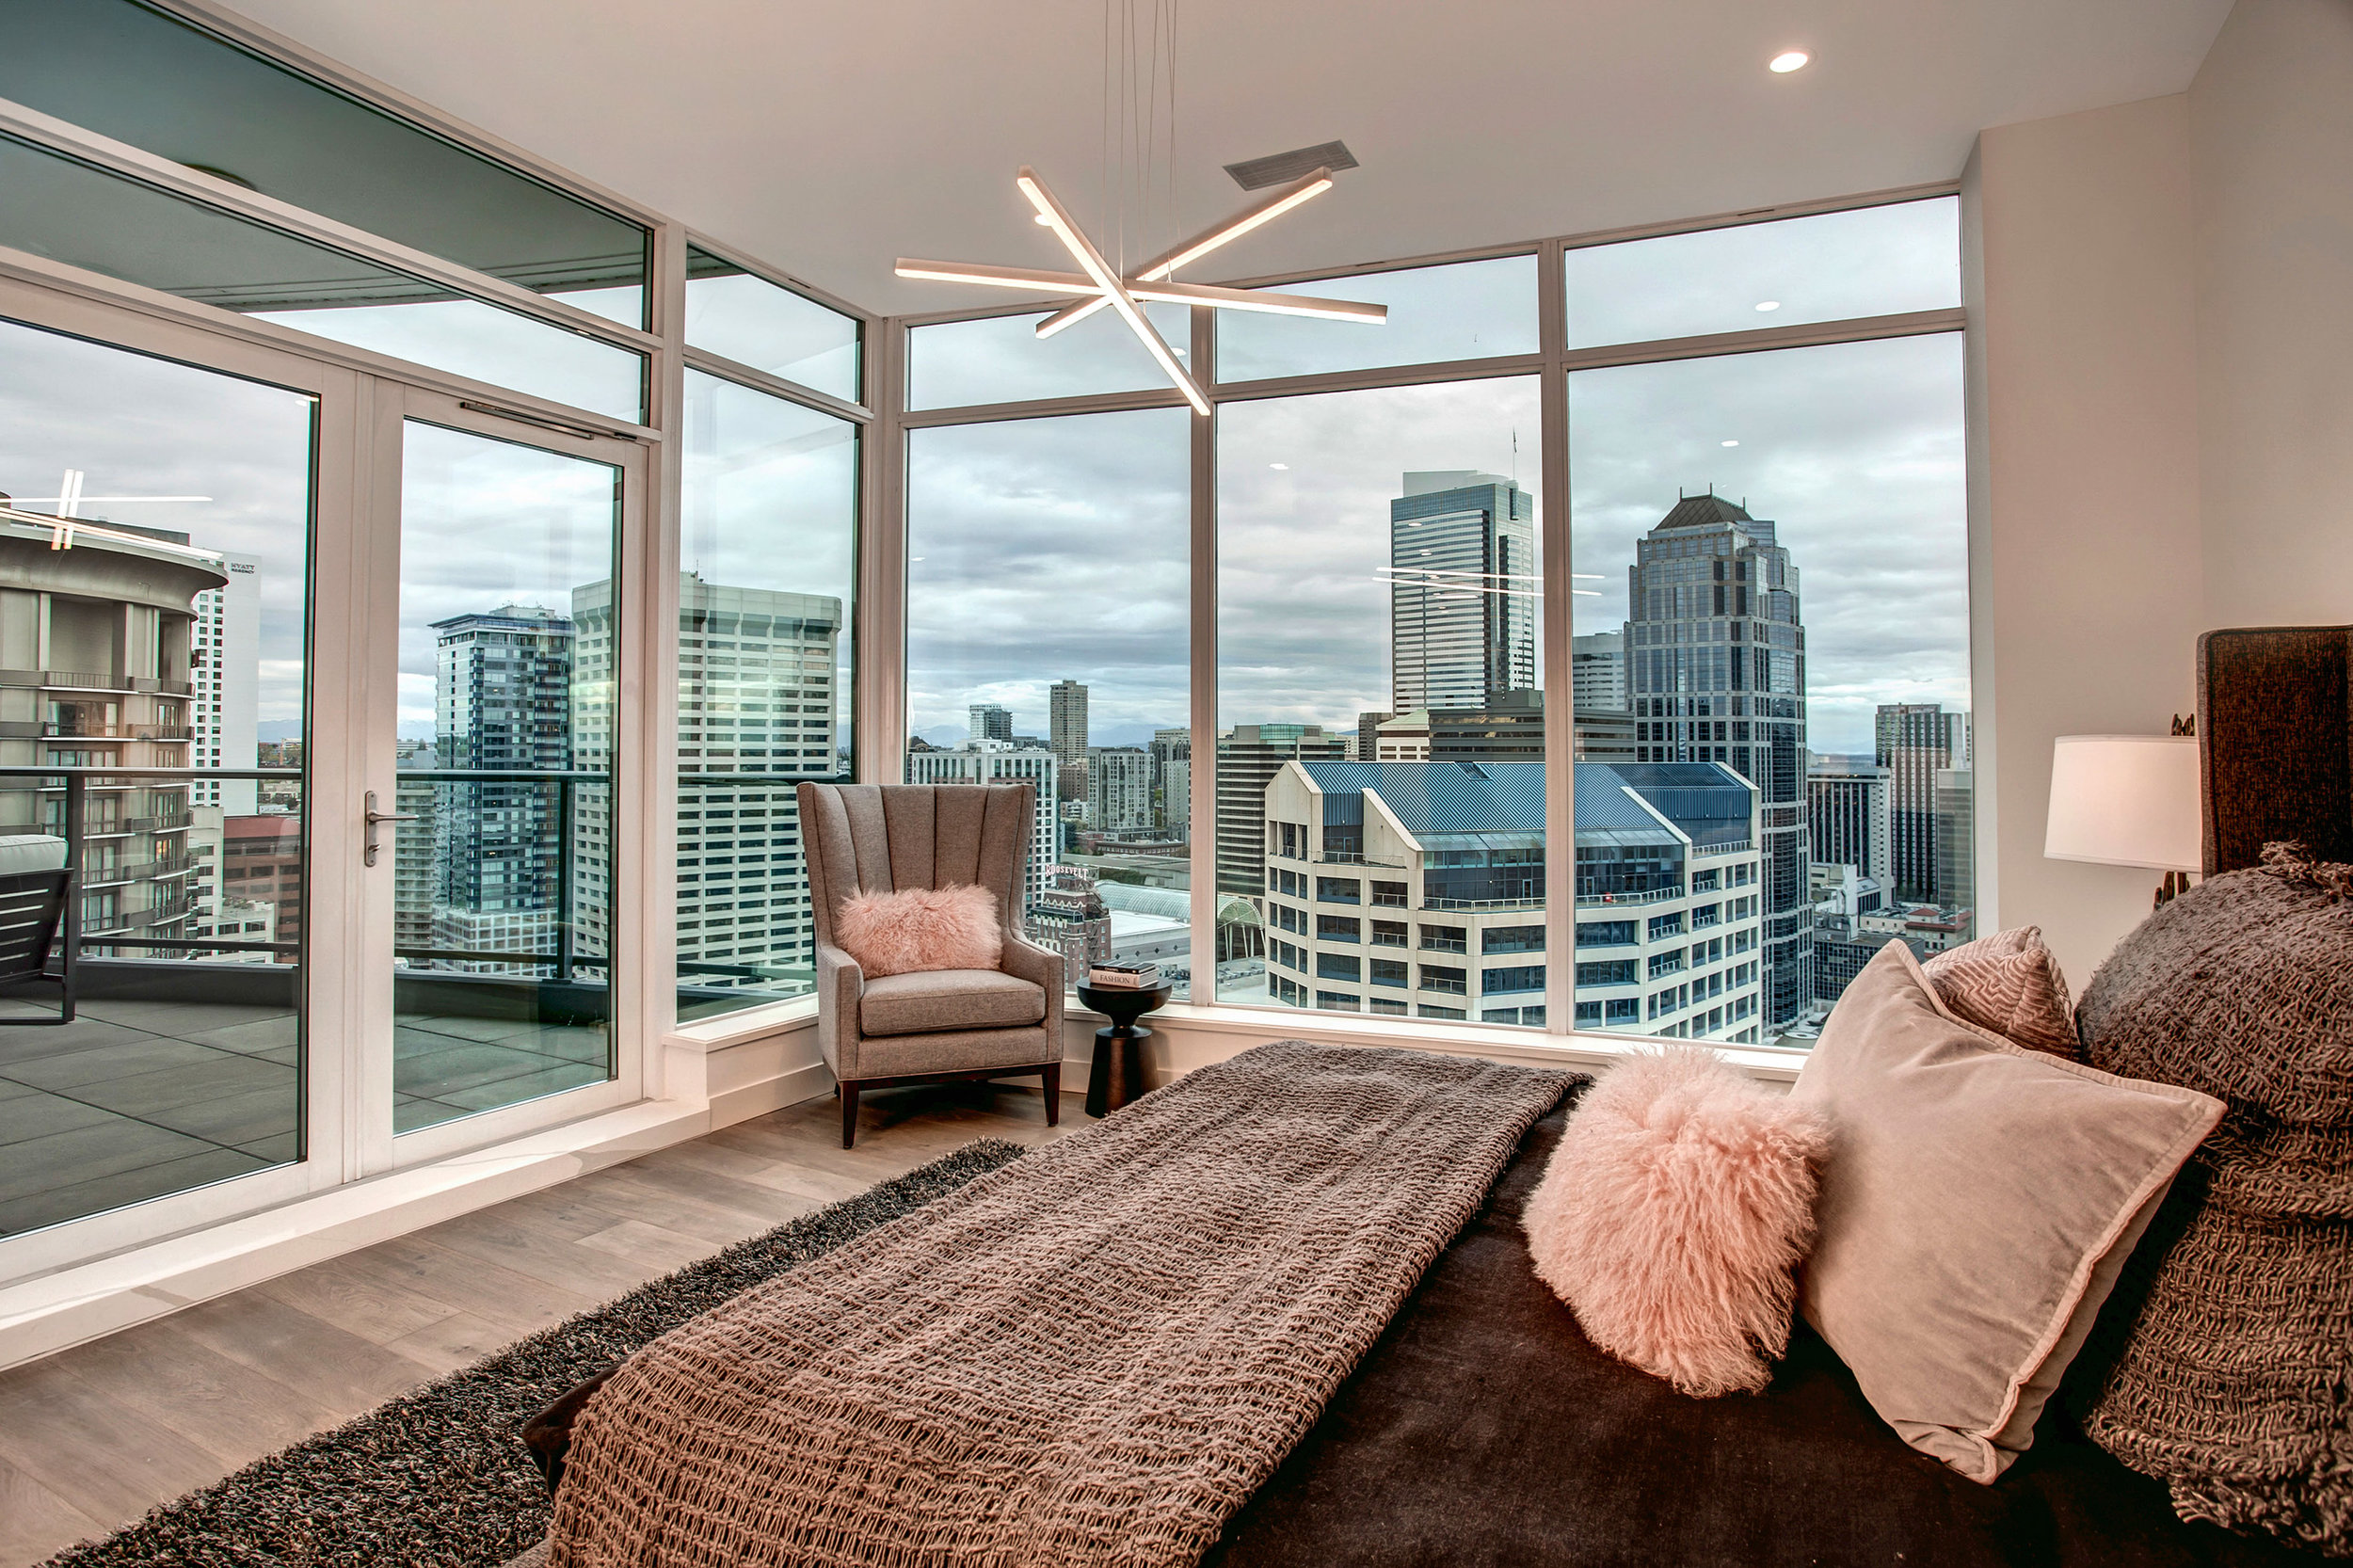 Master suite with floor to ceiling windows, dramatic city views, and access to the covered balcony.